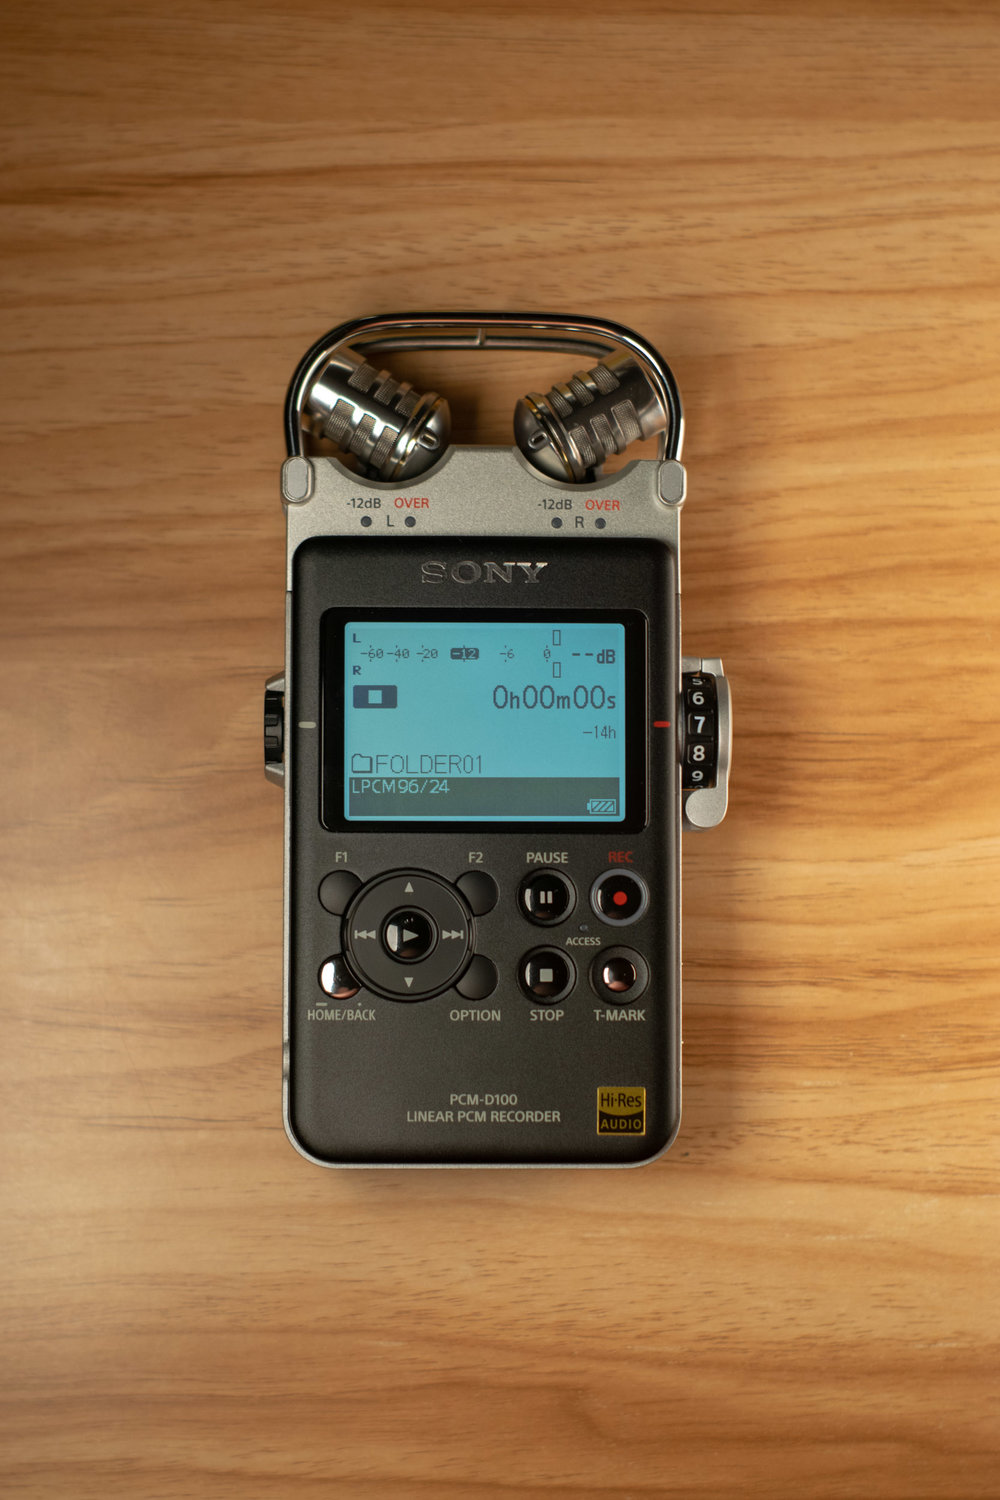 Sony PCM-D100-1 Above View On Portrait.jpg